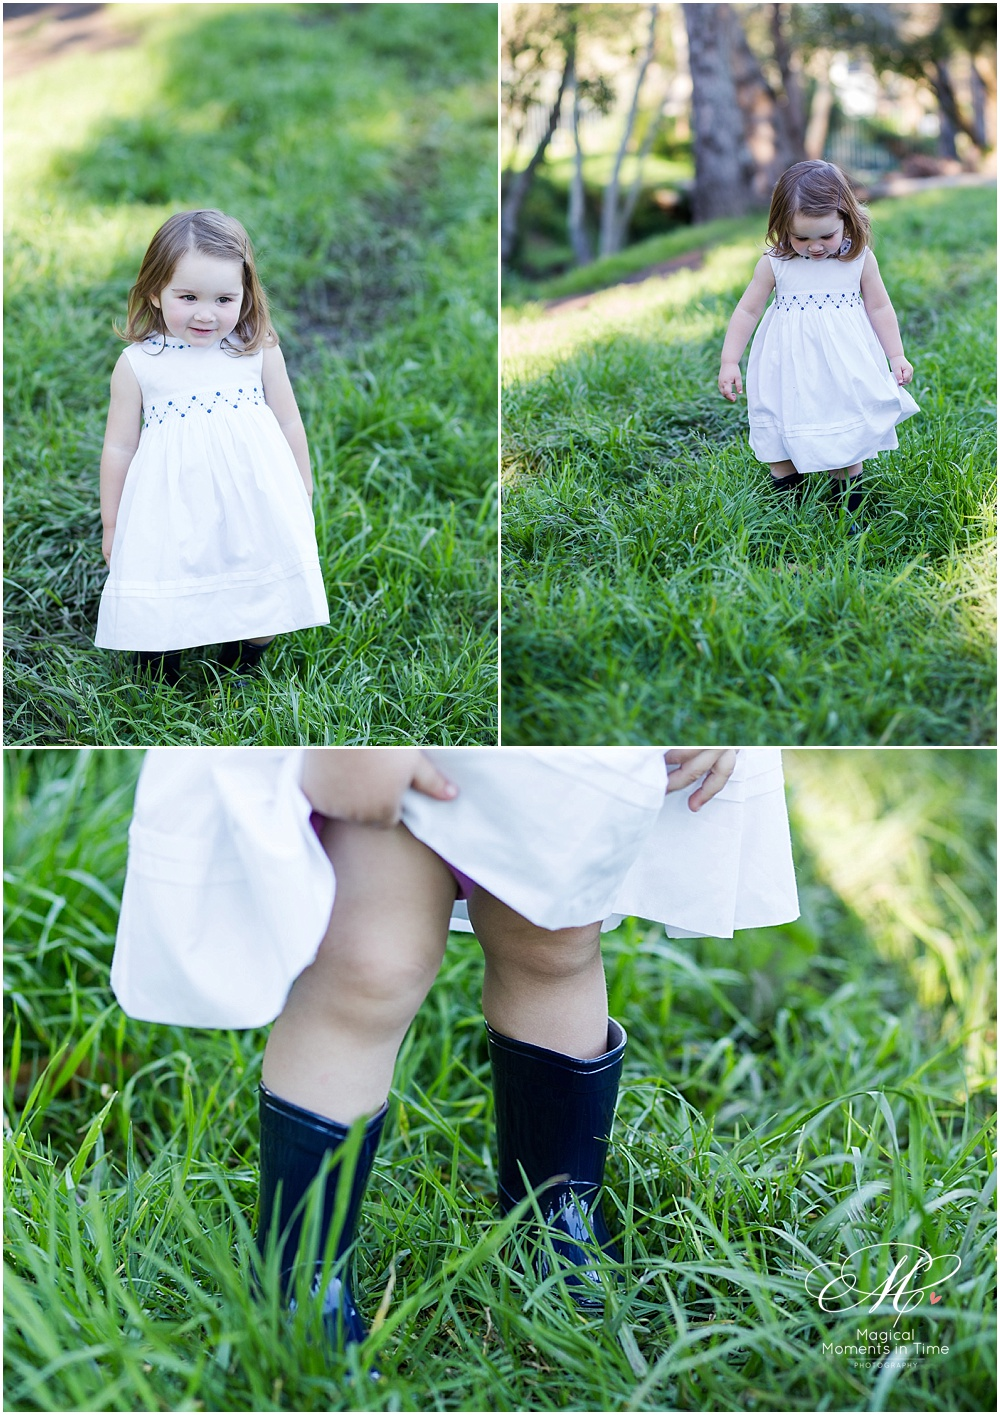 gumboots and party dresses in the grass